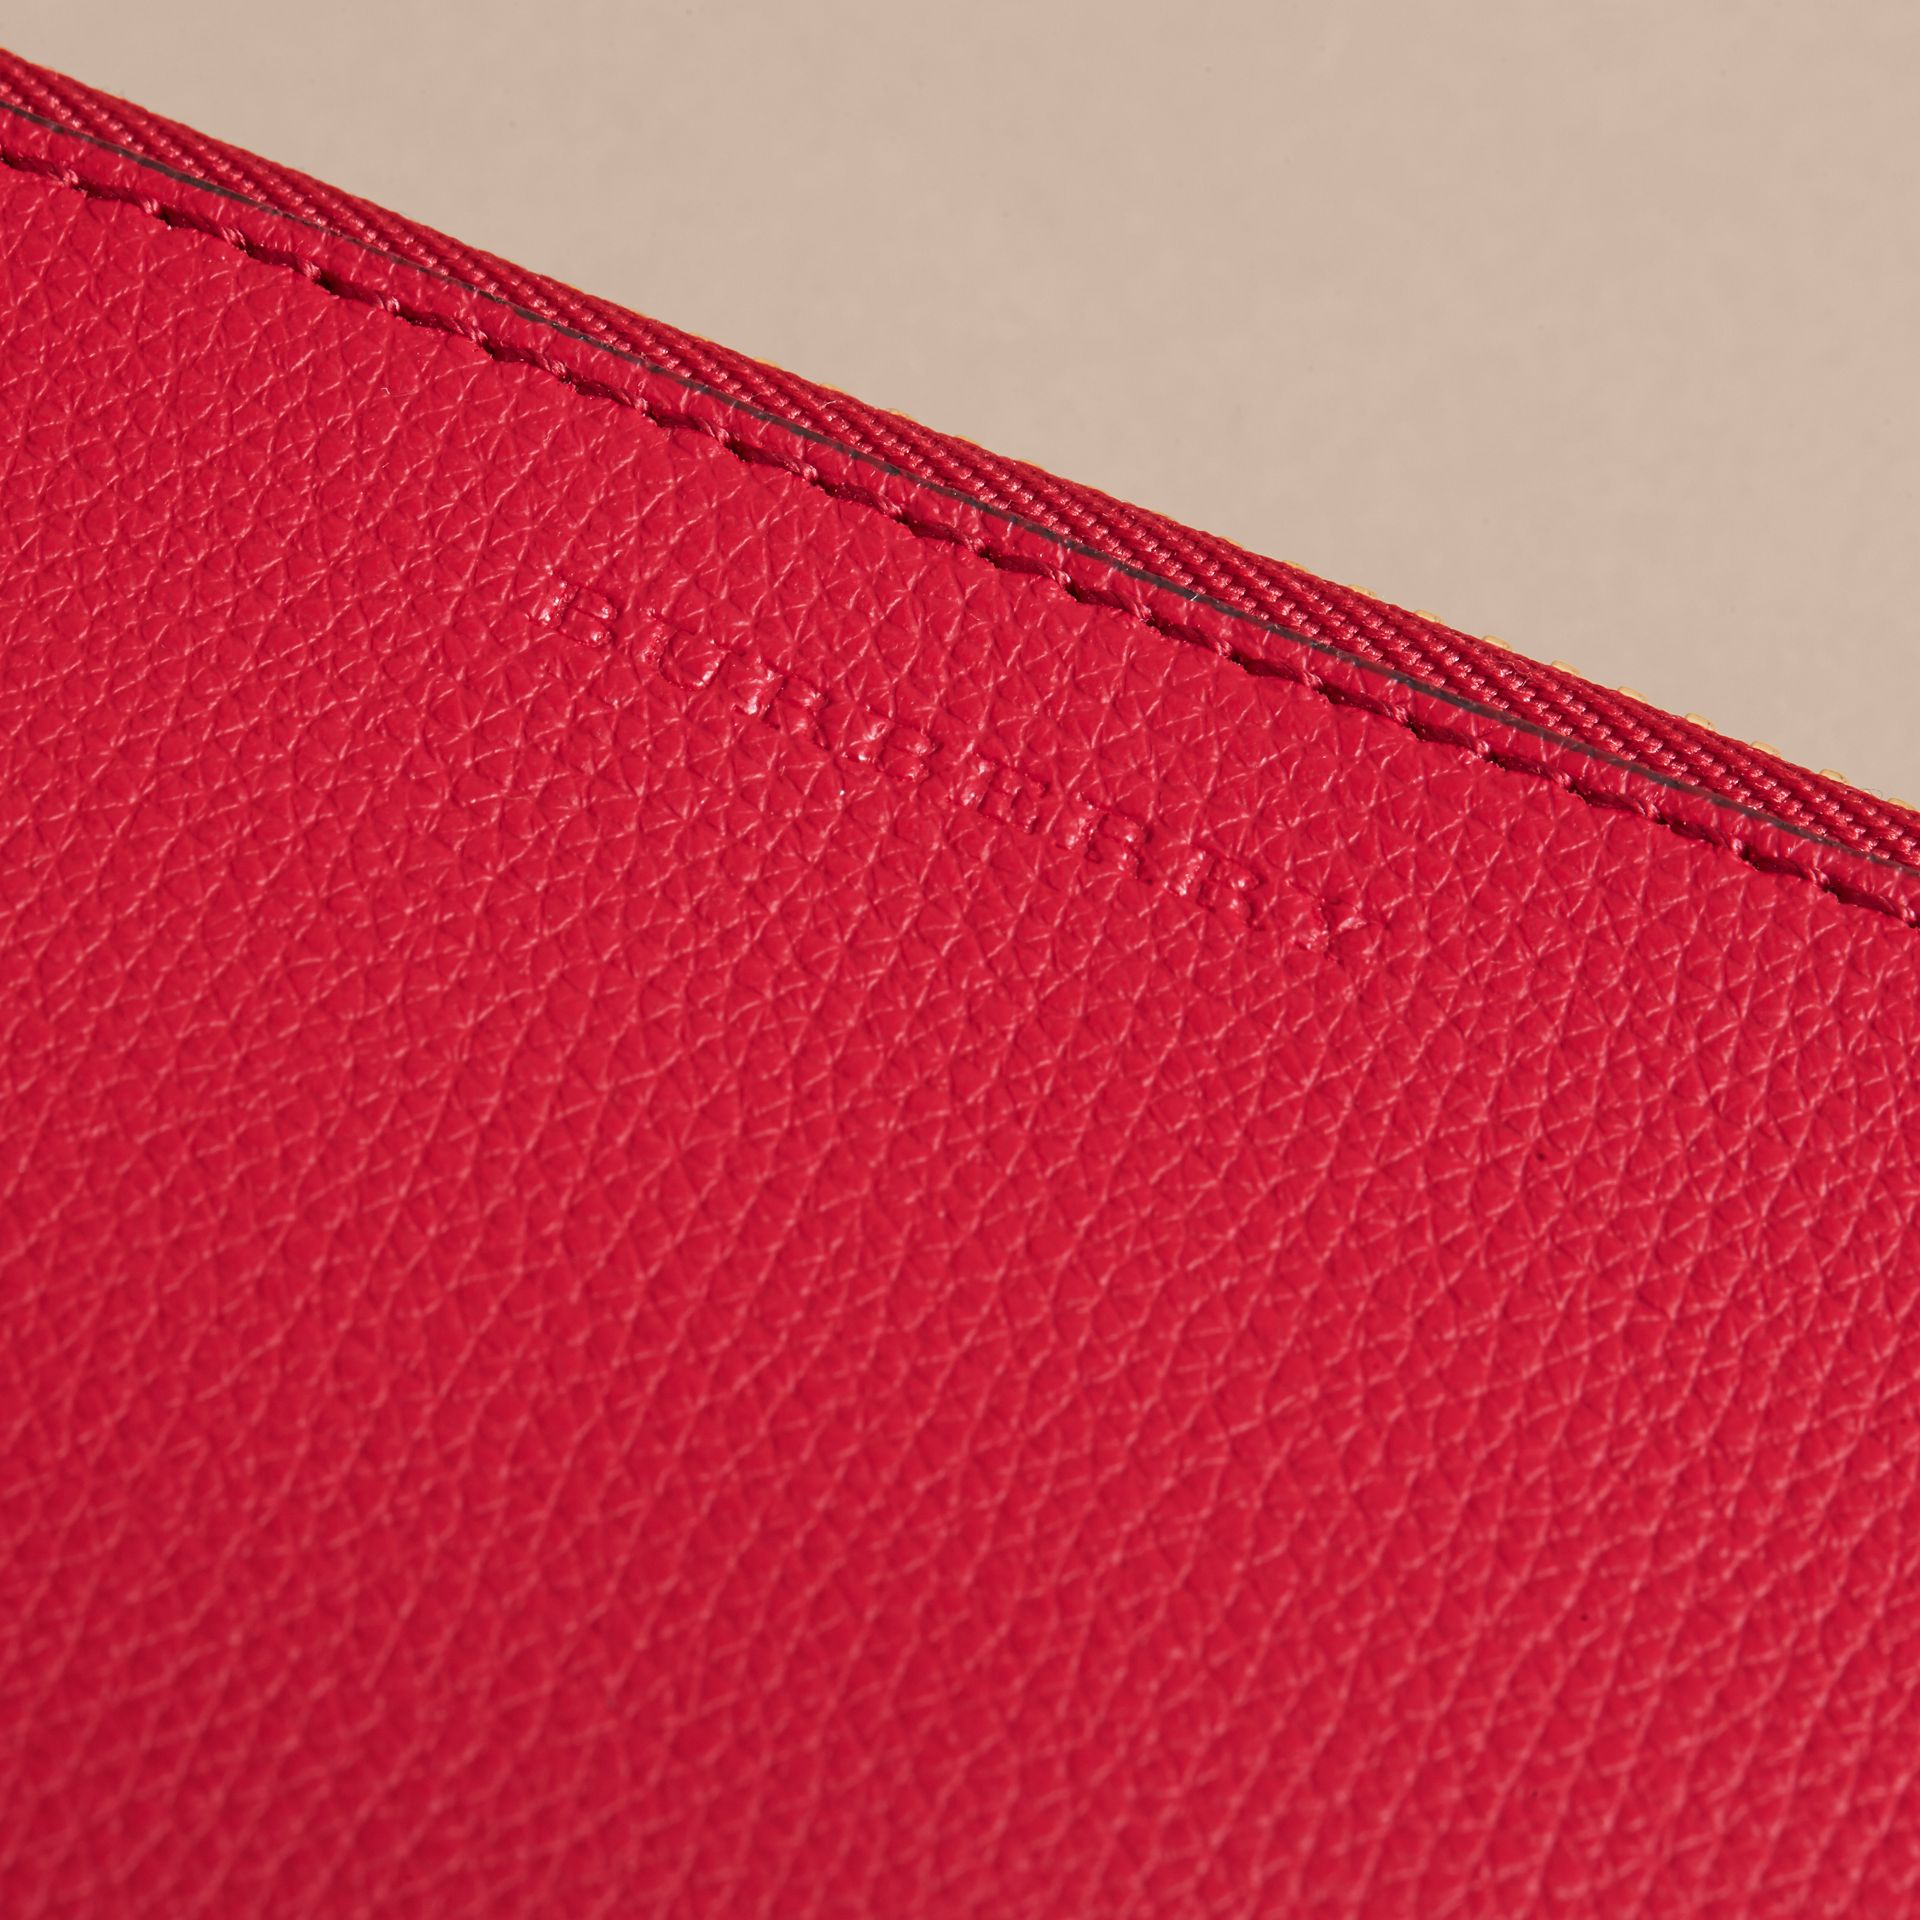 Haymarket Check and Leather Pouch in Poppy Red - Women | Burberry Canada - gallery image 2